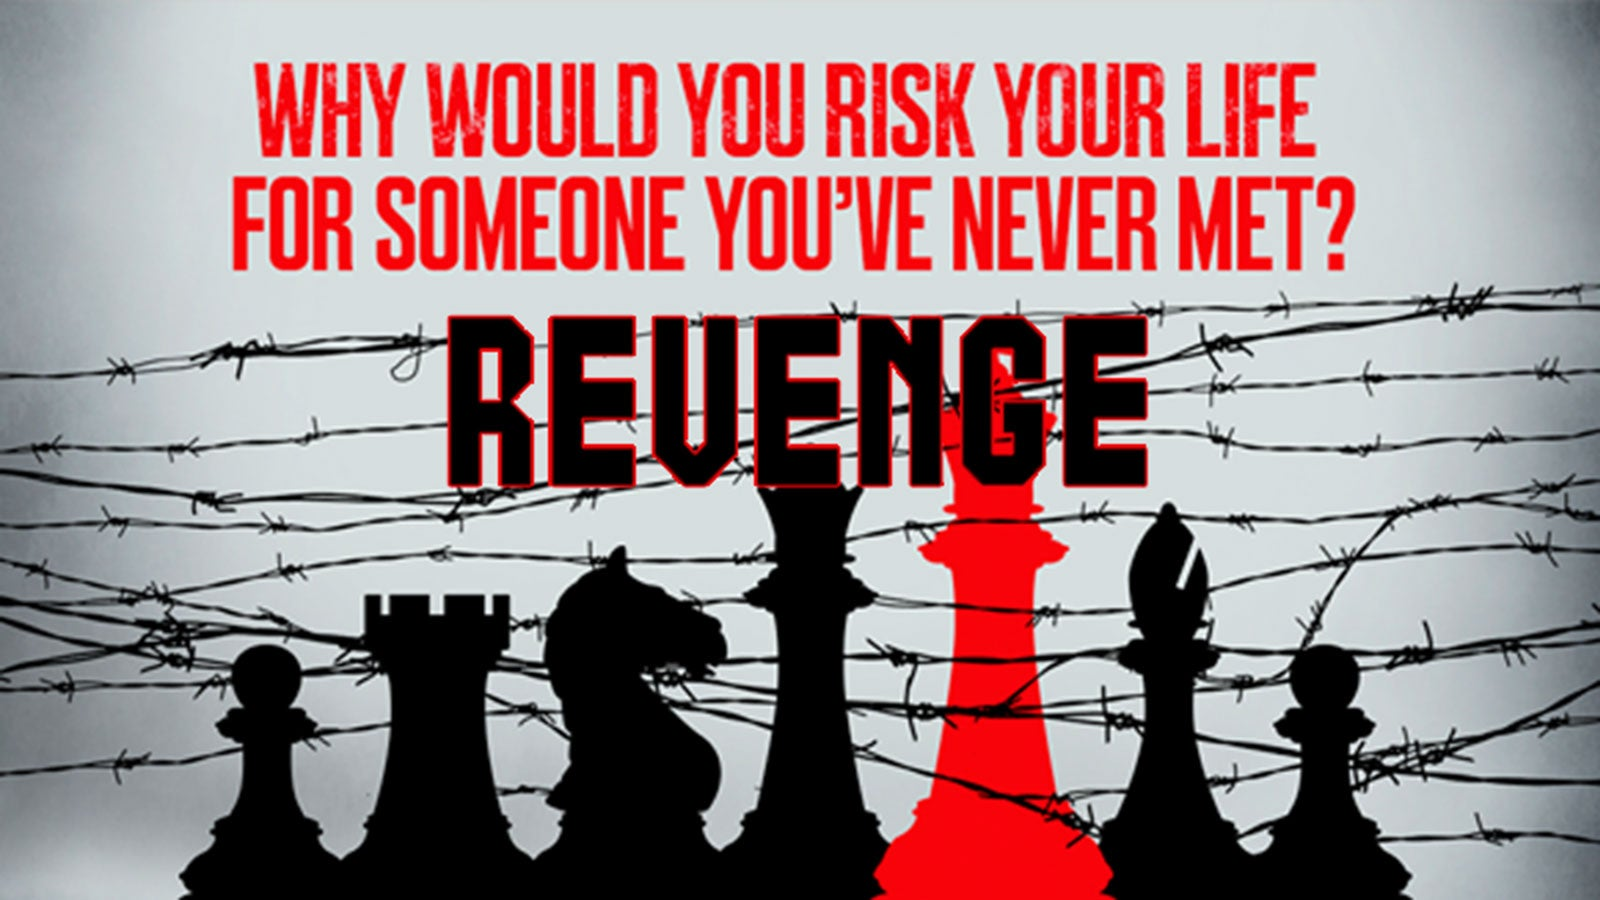 Why would you risk your life for someone you've never met? Revenge. Chess pieces in barbed wire